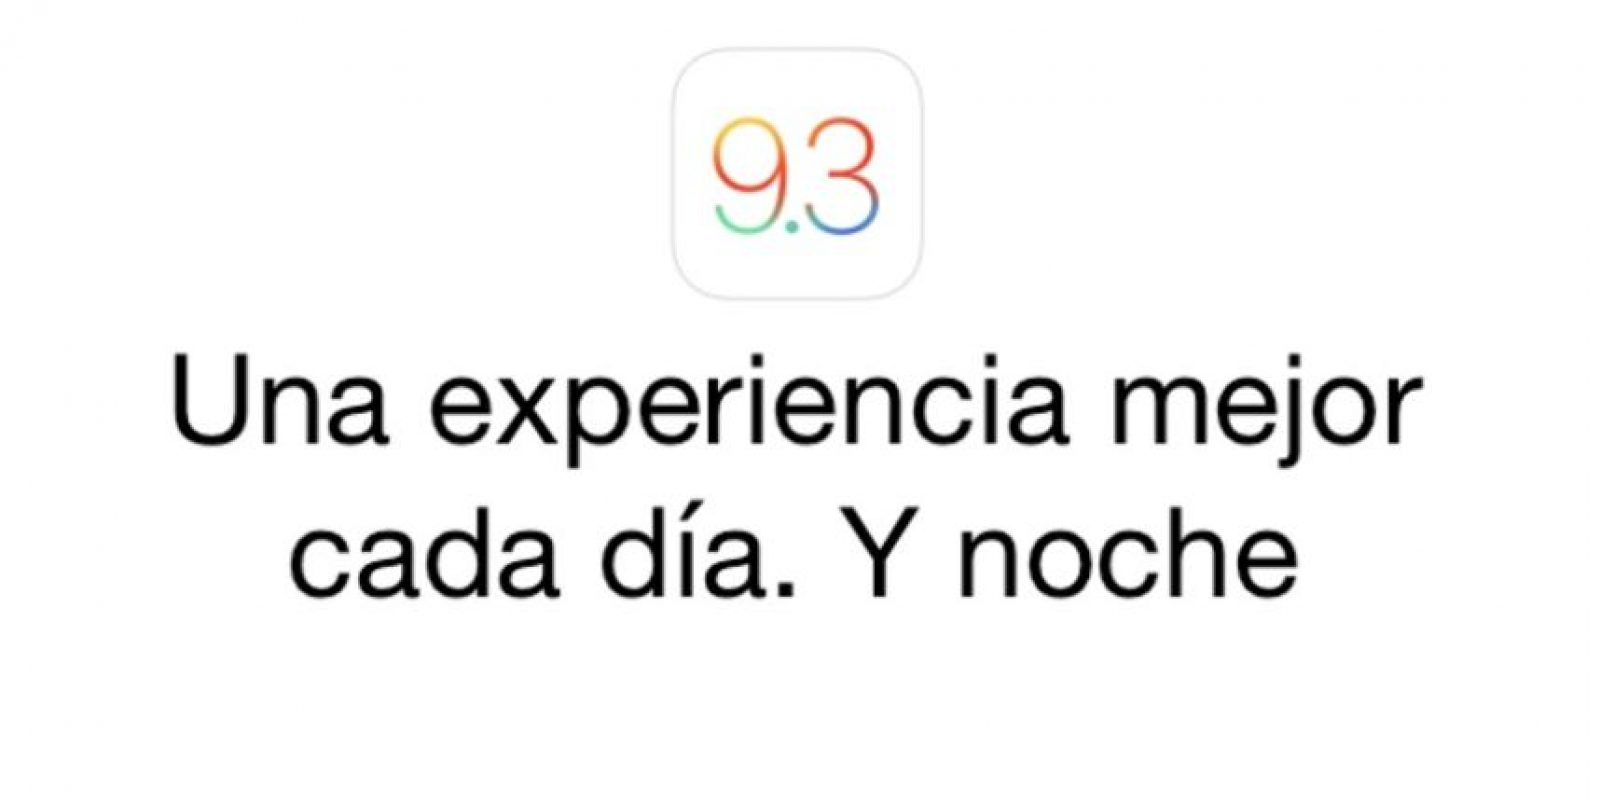 La versión BETA de iOS 9.3 ya está disponible. Foto: Apple